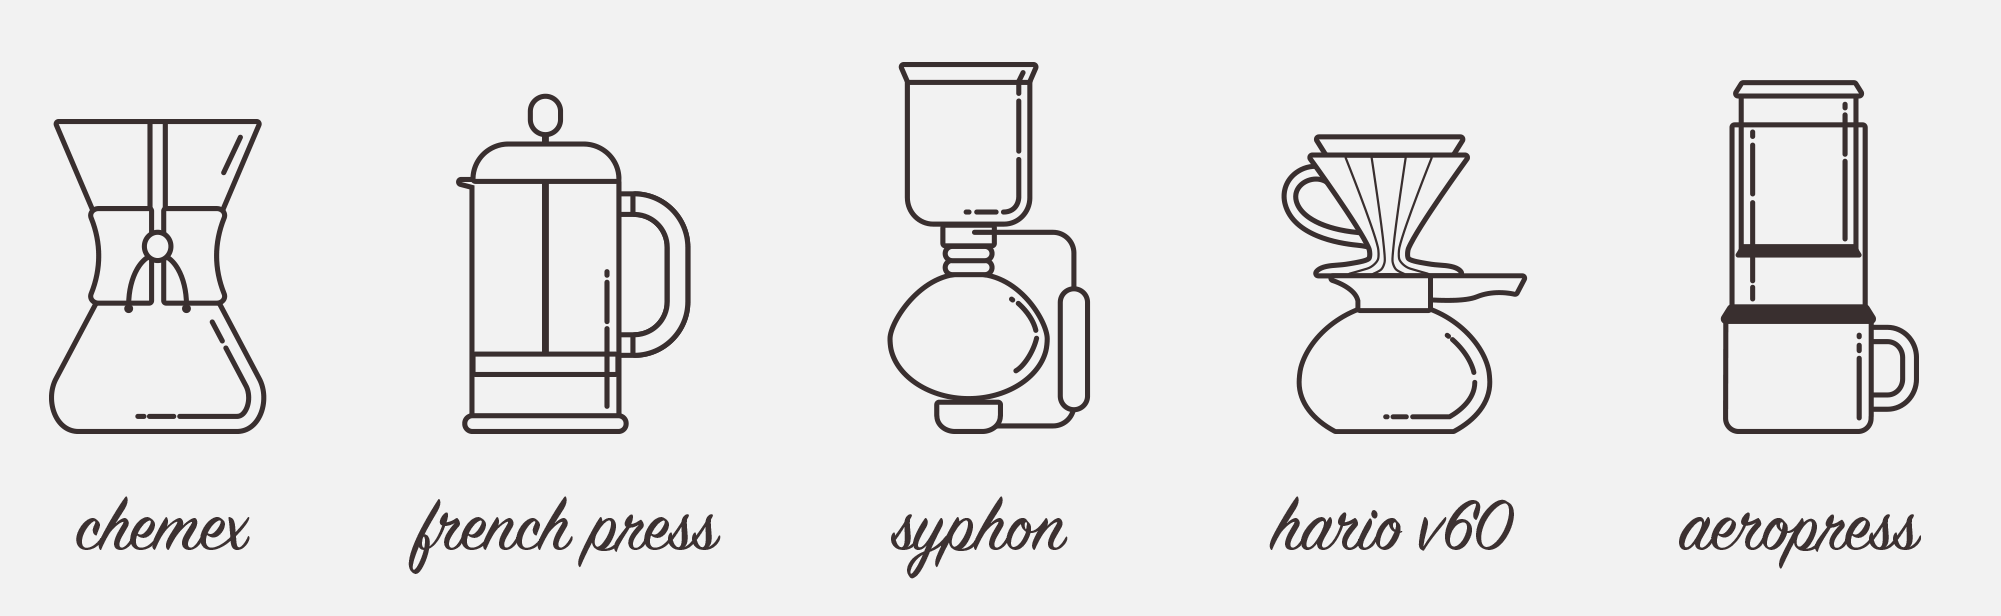 Chemex, French Press, Syphon, Hario V60 e Aeropress